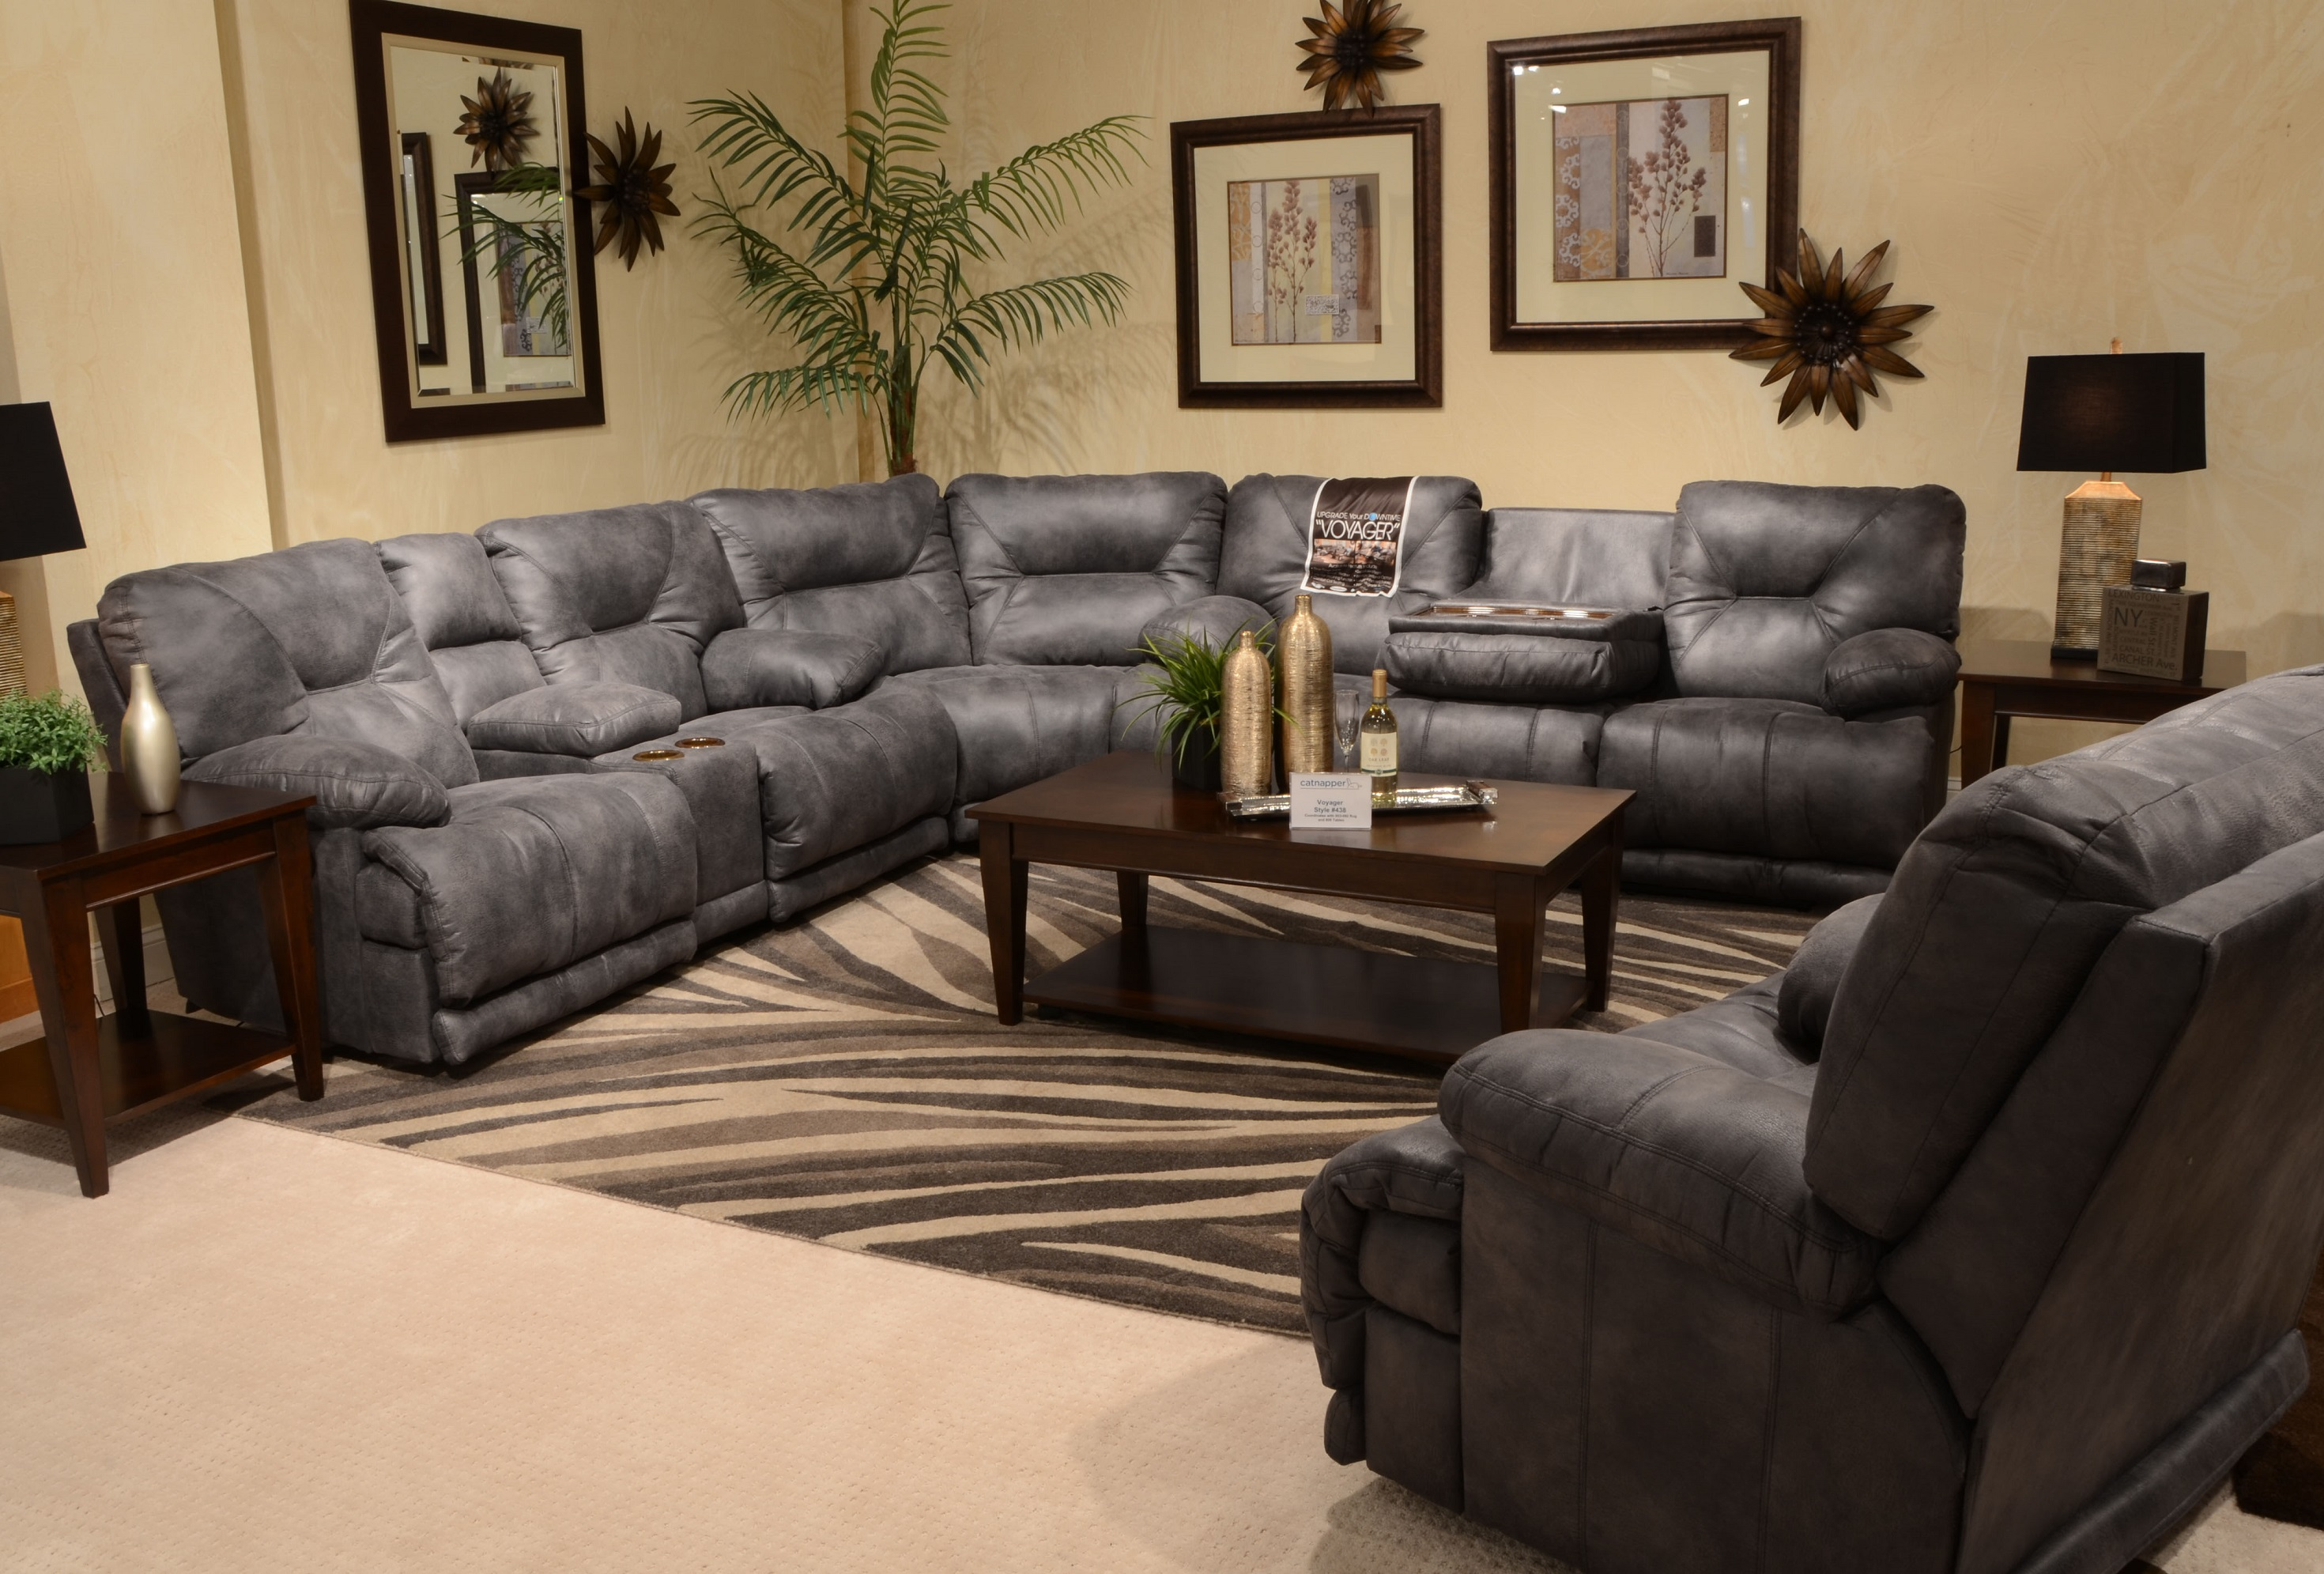 Brilliant sofa sectionals for home interior design with leather sectional sofa and sectional sleeper sofa